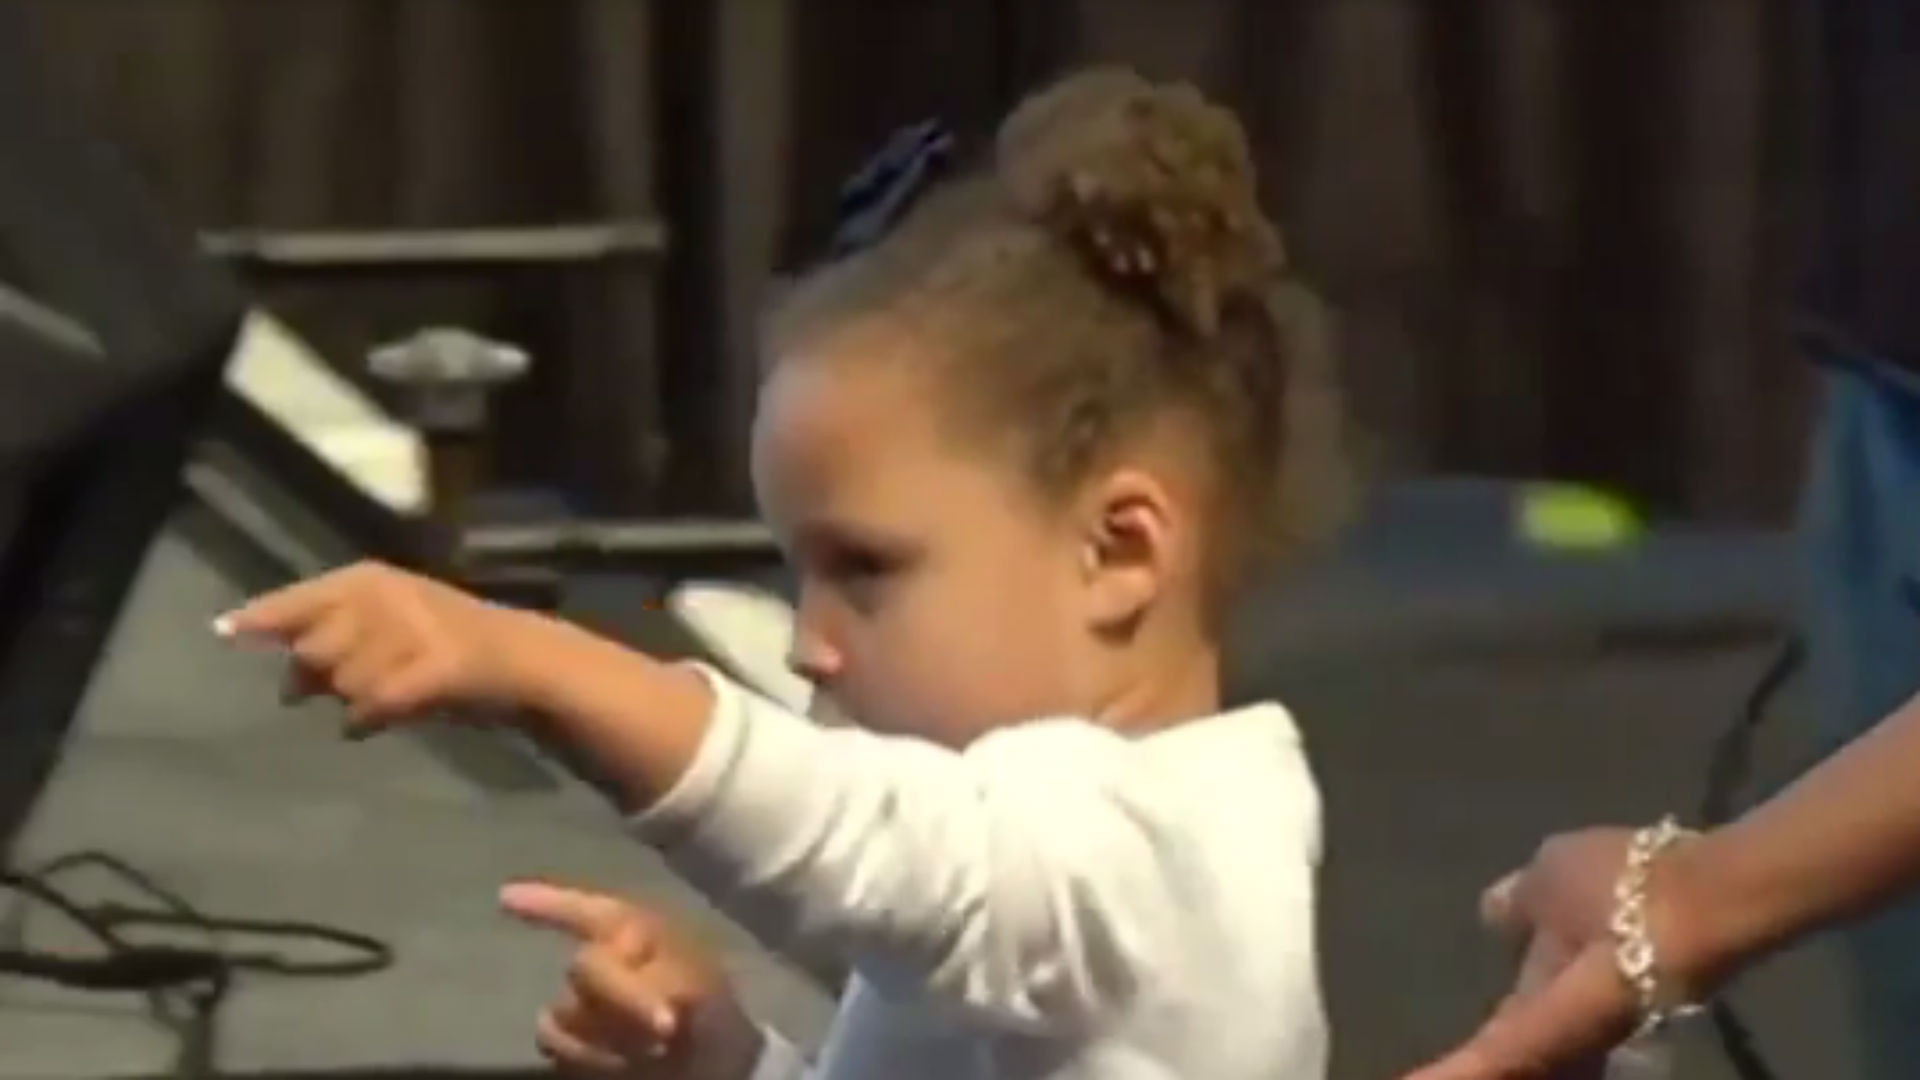 stephen curry u0026 39 s daughter riley steals show at mvp ceremony